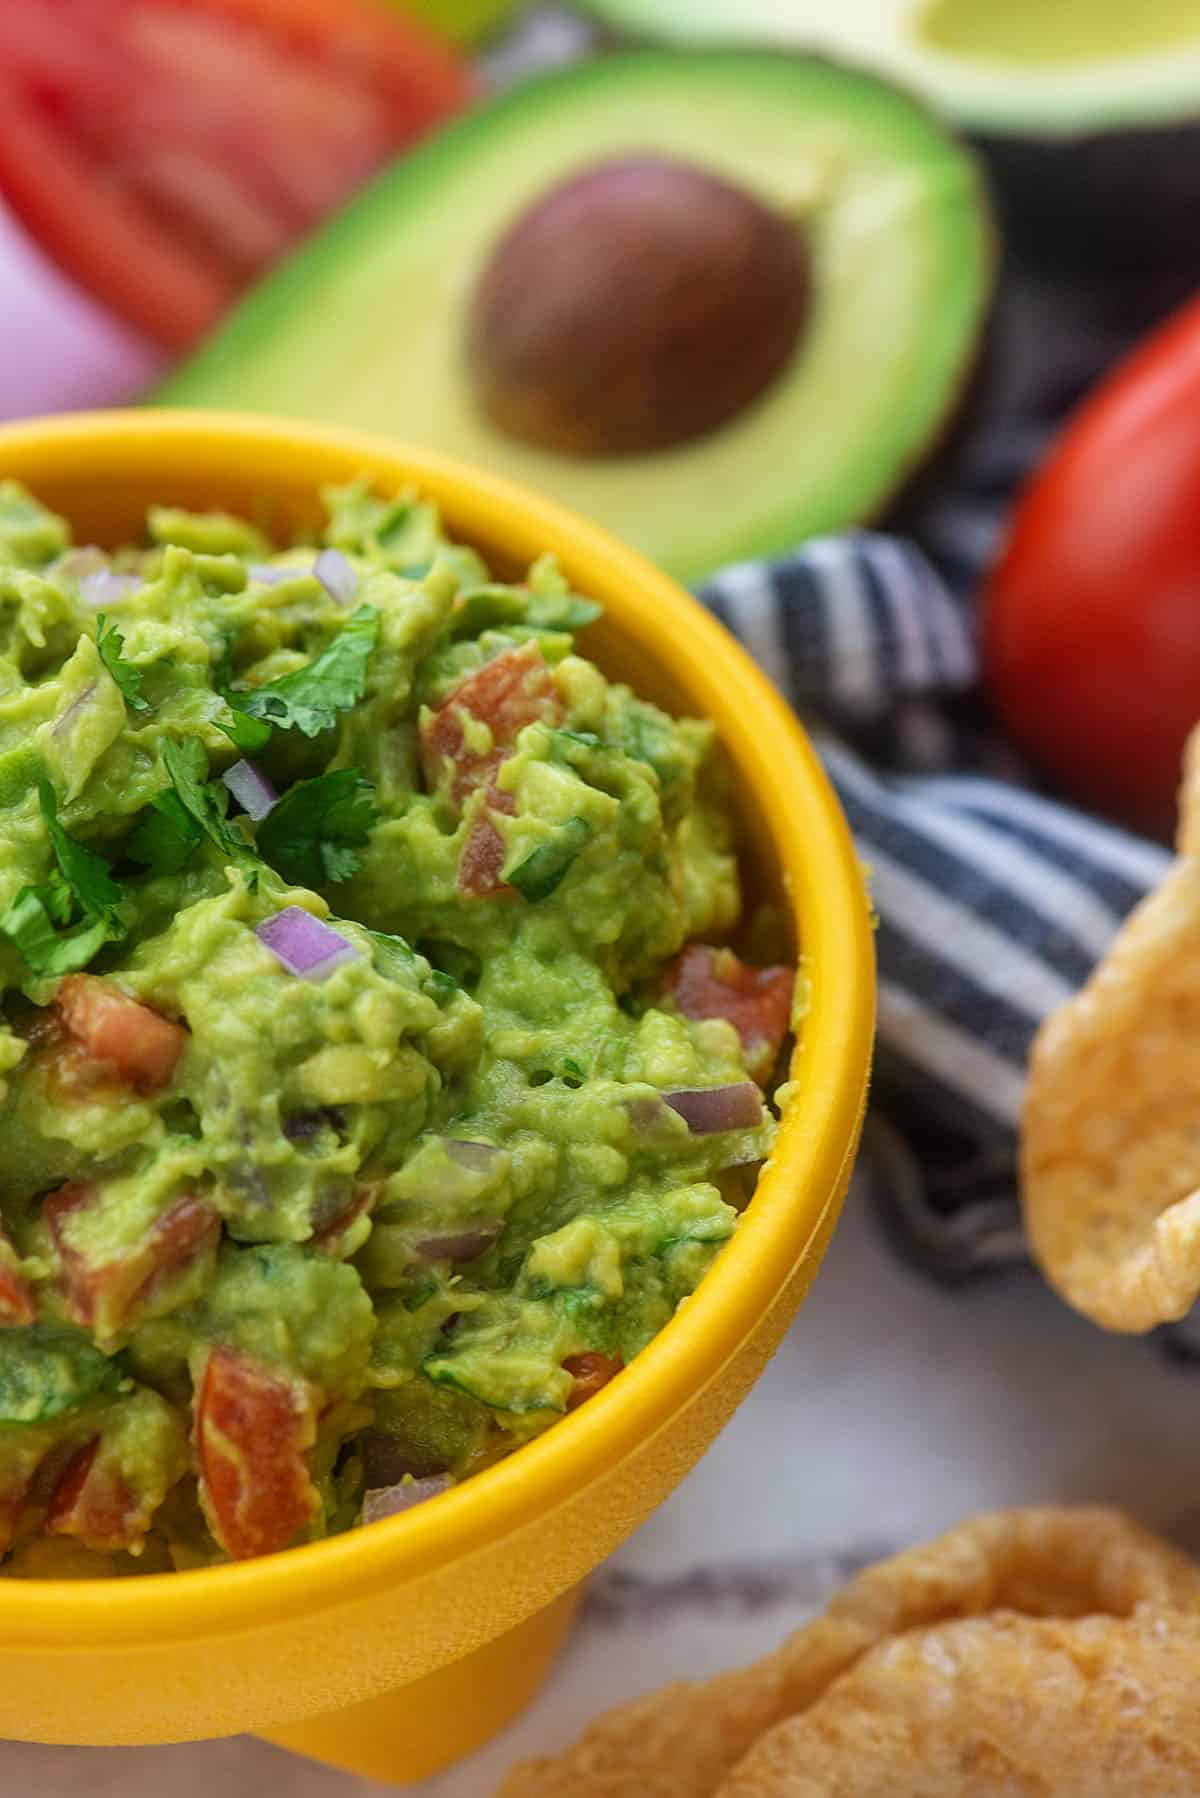 guacamole recipe with pork rinds in yellow bowl